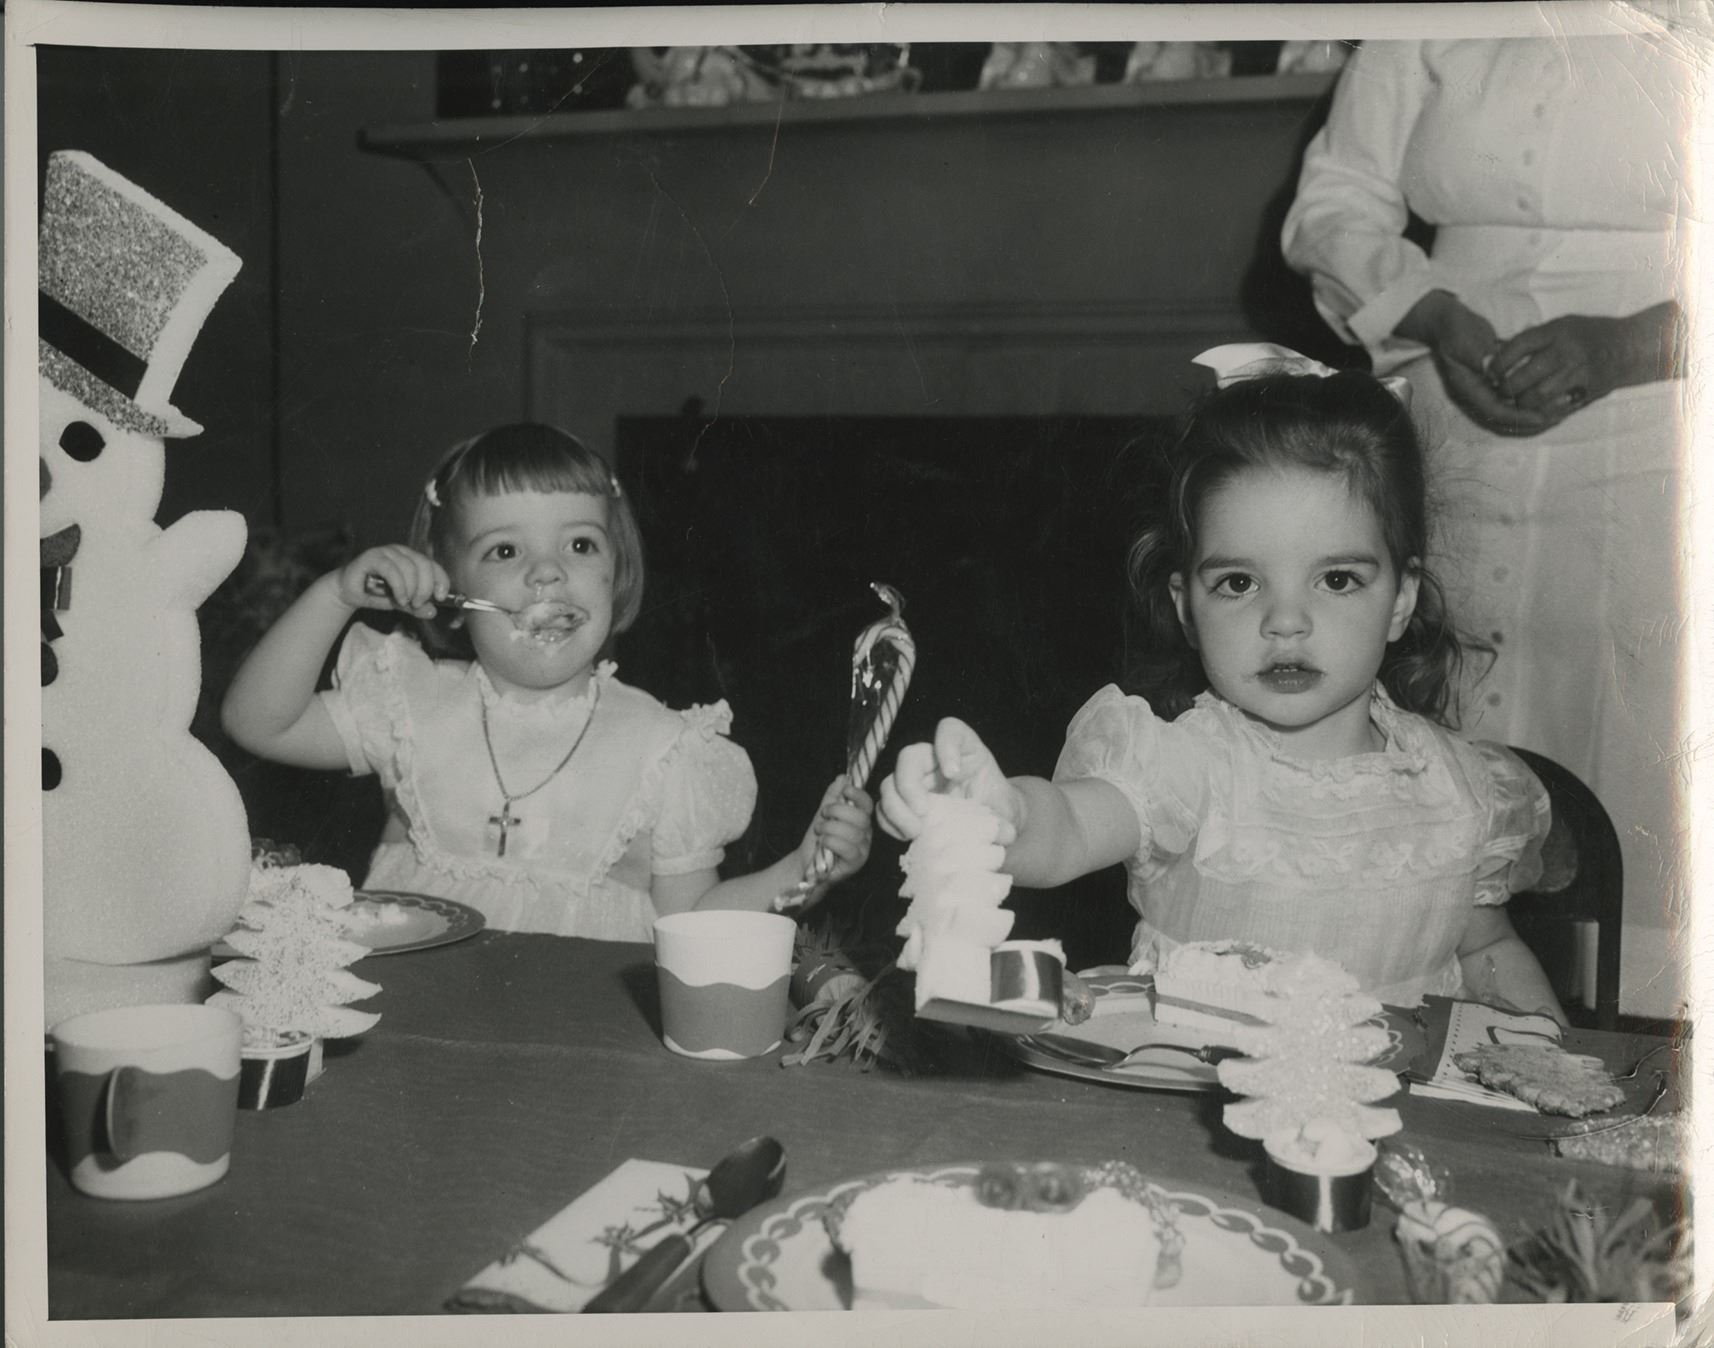 Liza Minnelli (20+) photographs from childhood birthday parties